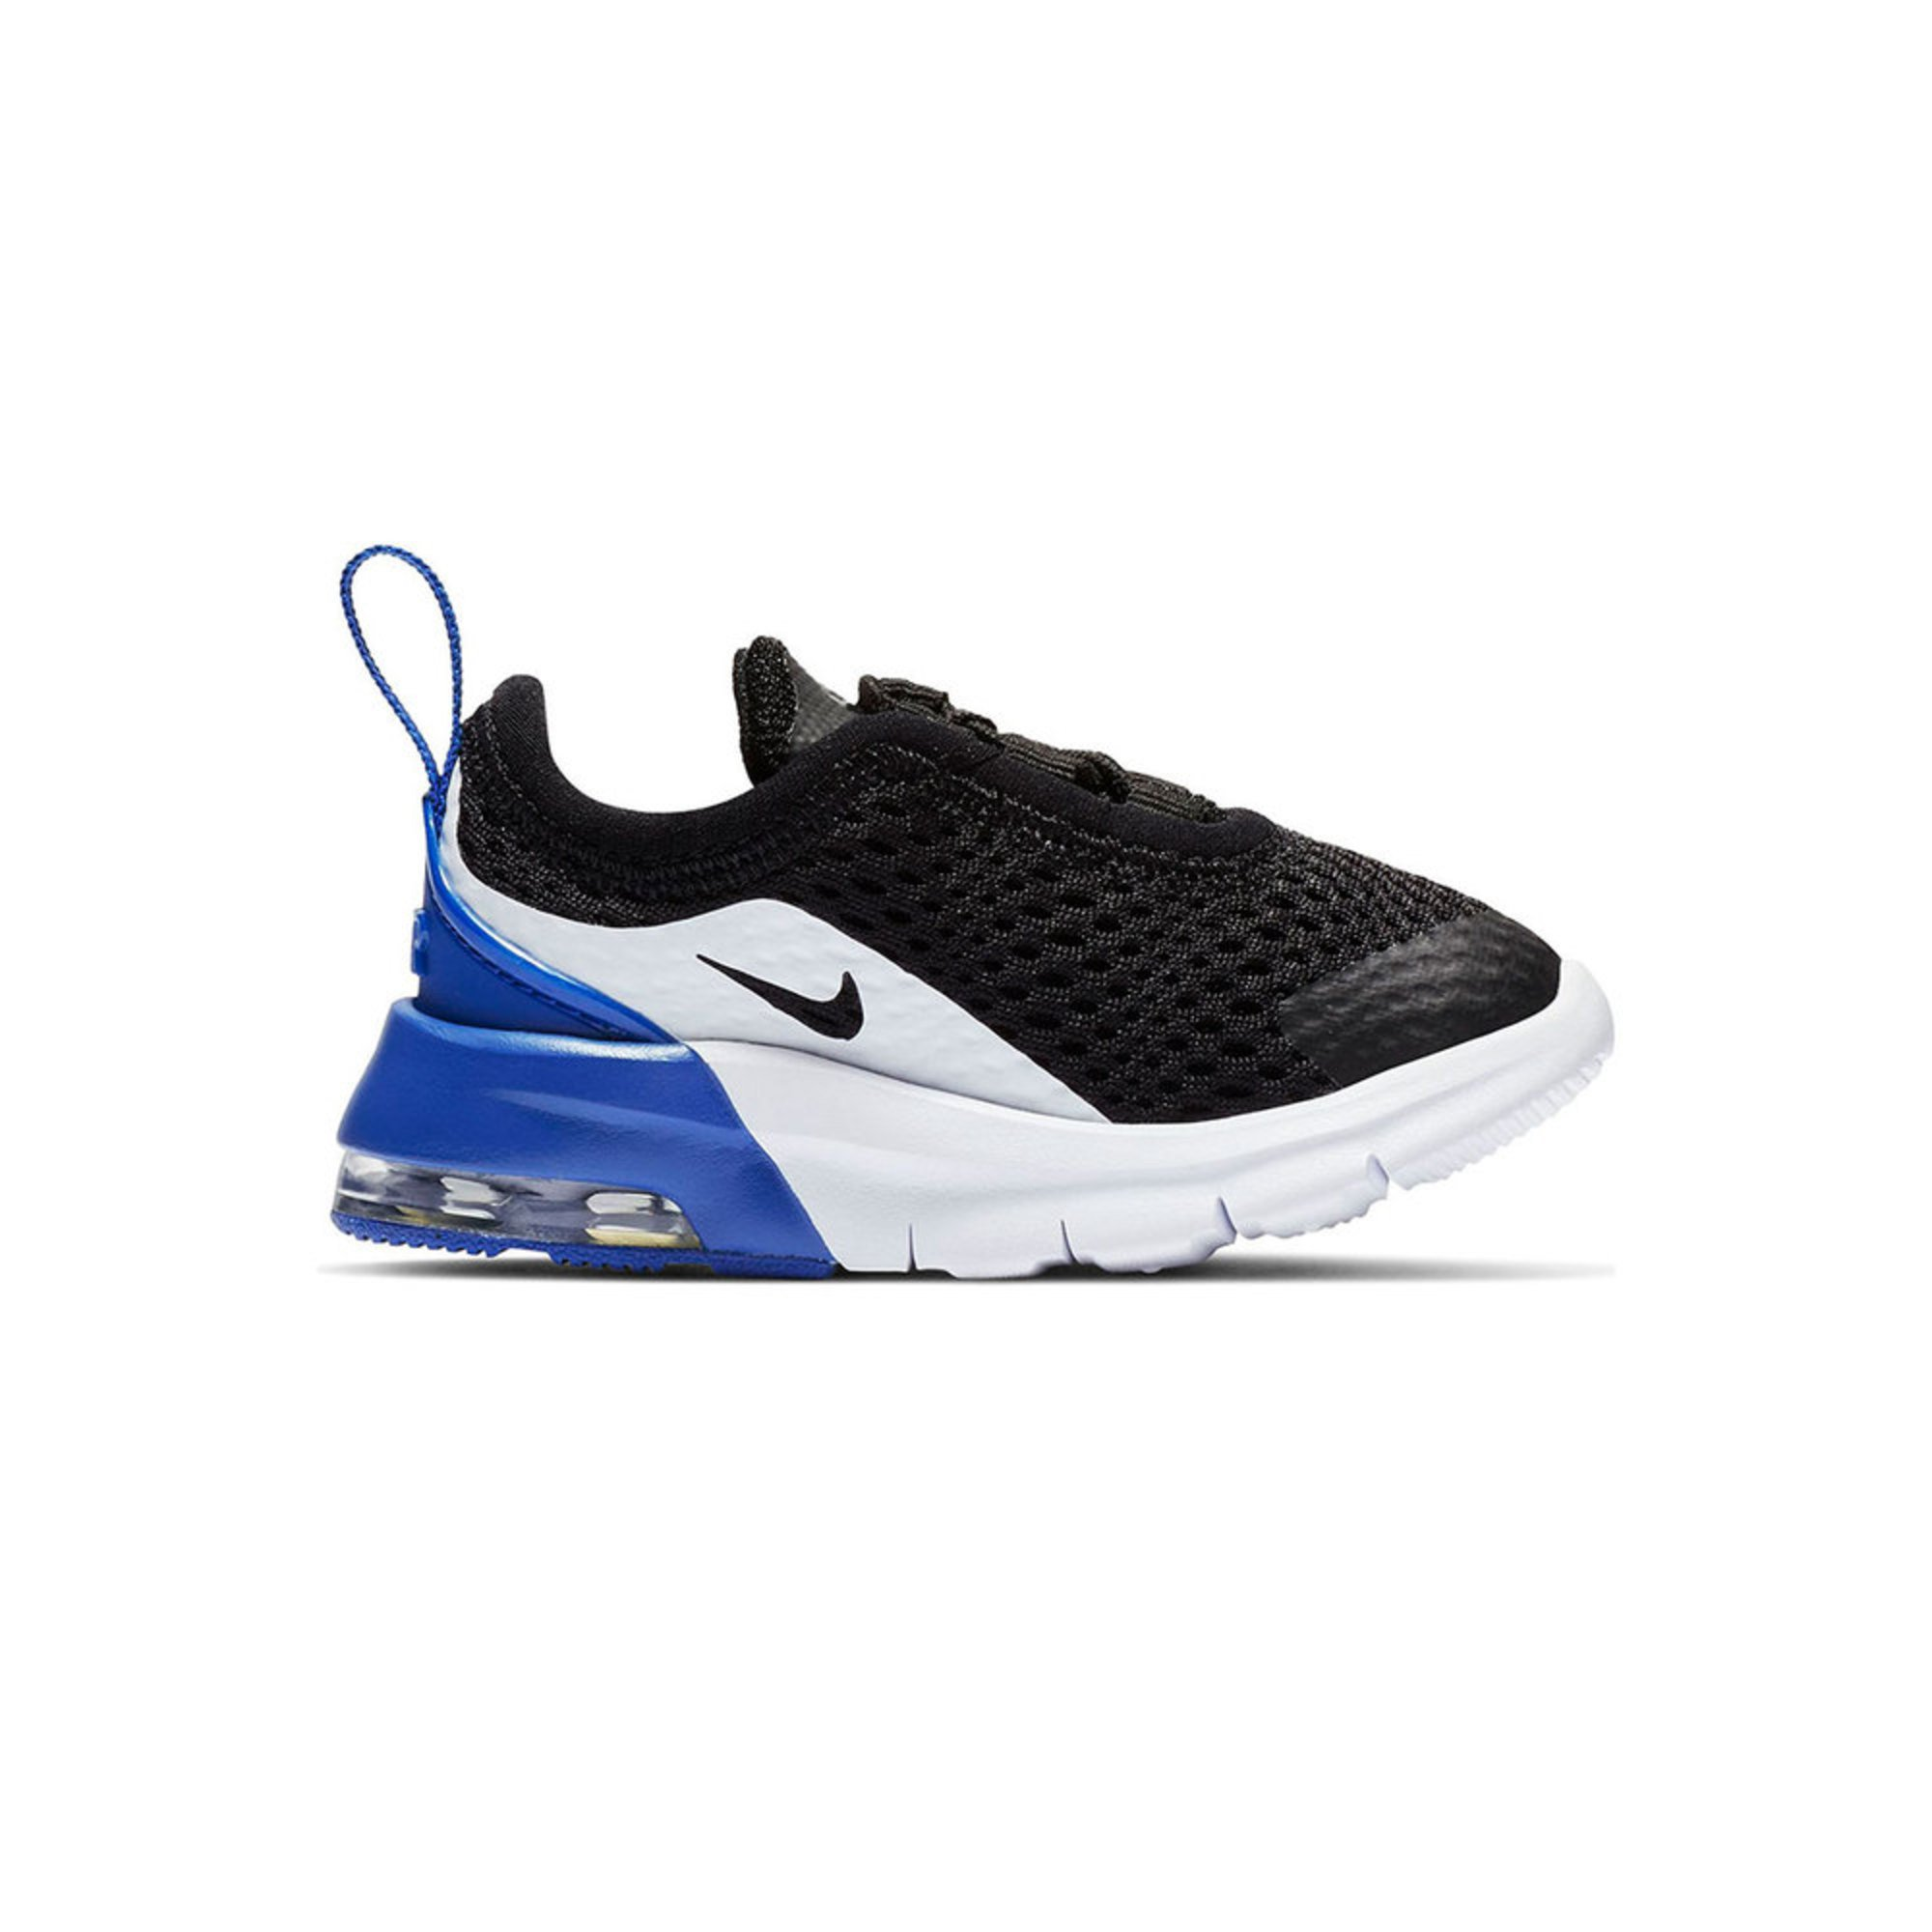 9e0aa1f789 Nike Boys Air Max Motion 2 Running Shoe (infant/toddler) | Toddler ...